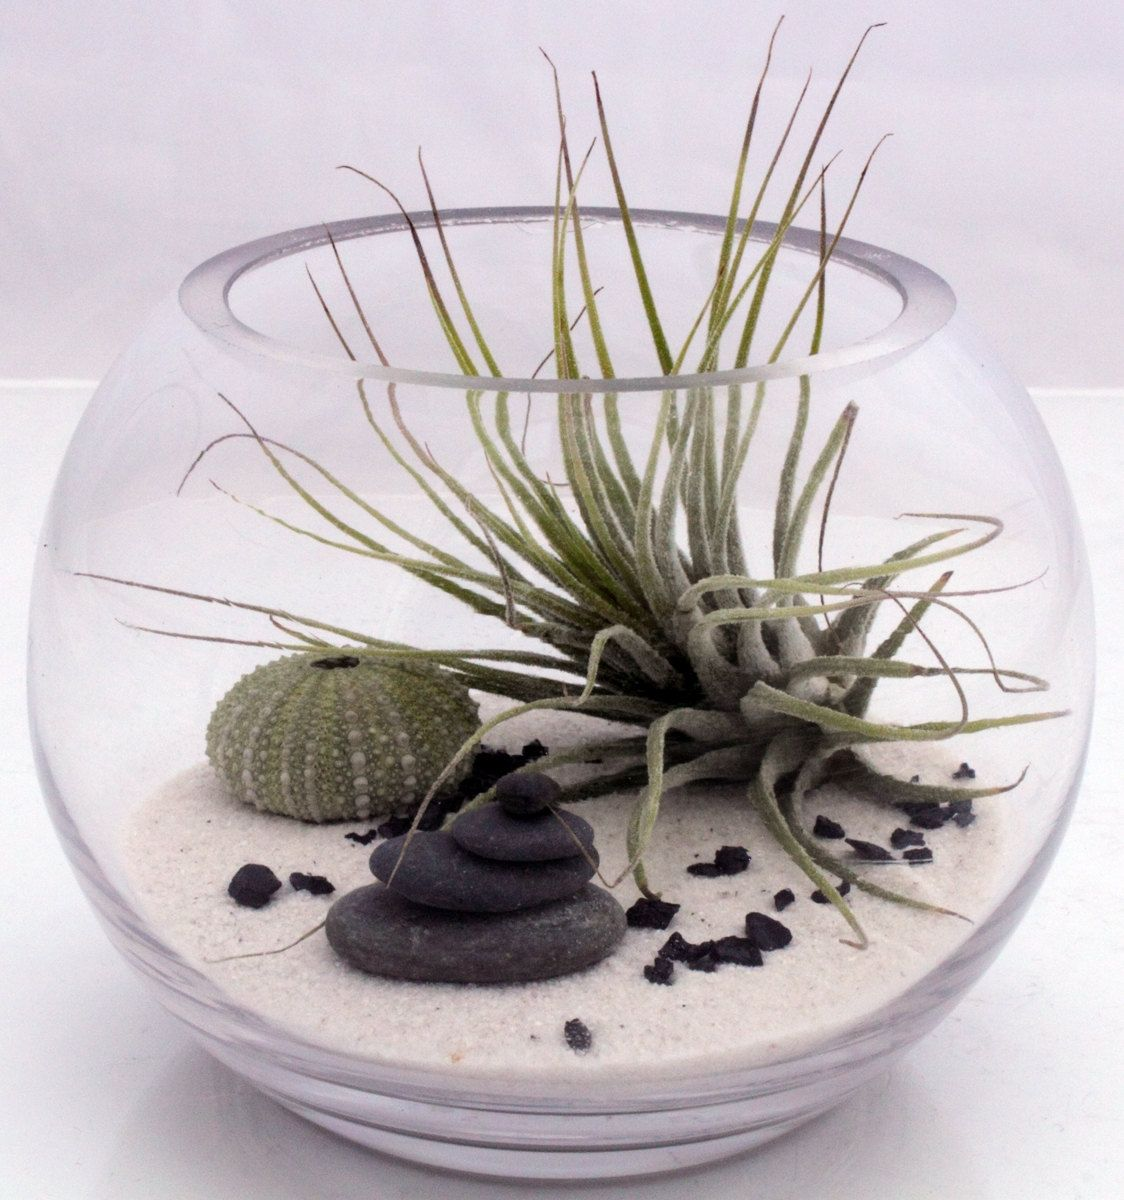 petit bureau zen terrarium jardin kit tillandsia par xercesart plante tillandsia pinterest. Black Bedroom Furniture Sets. Home Design Ideas